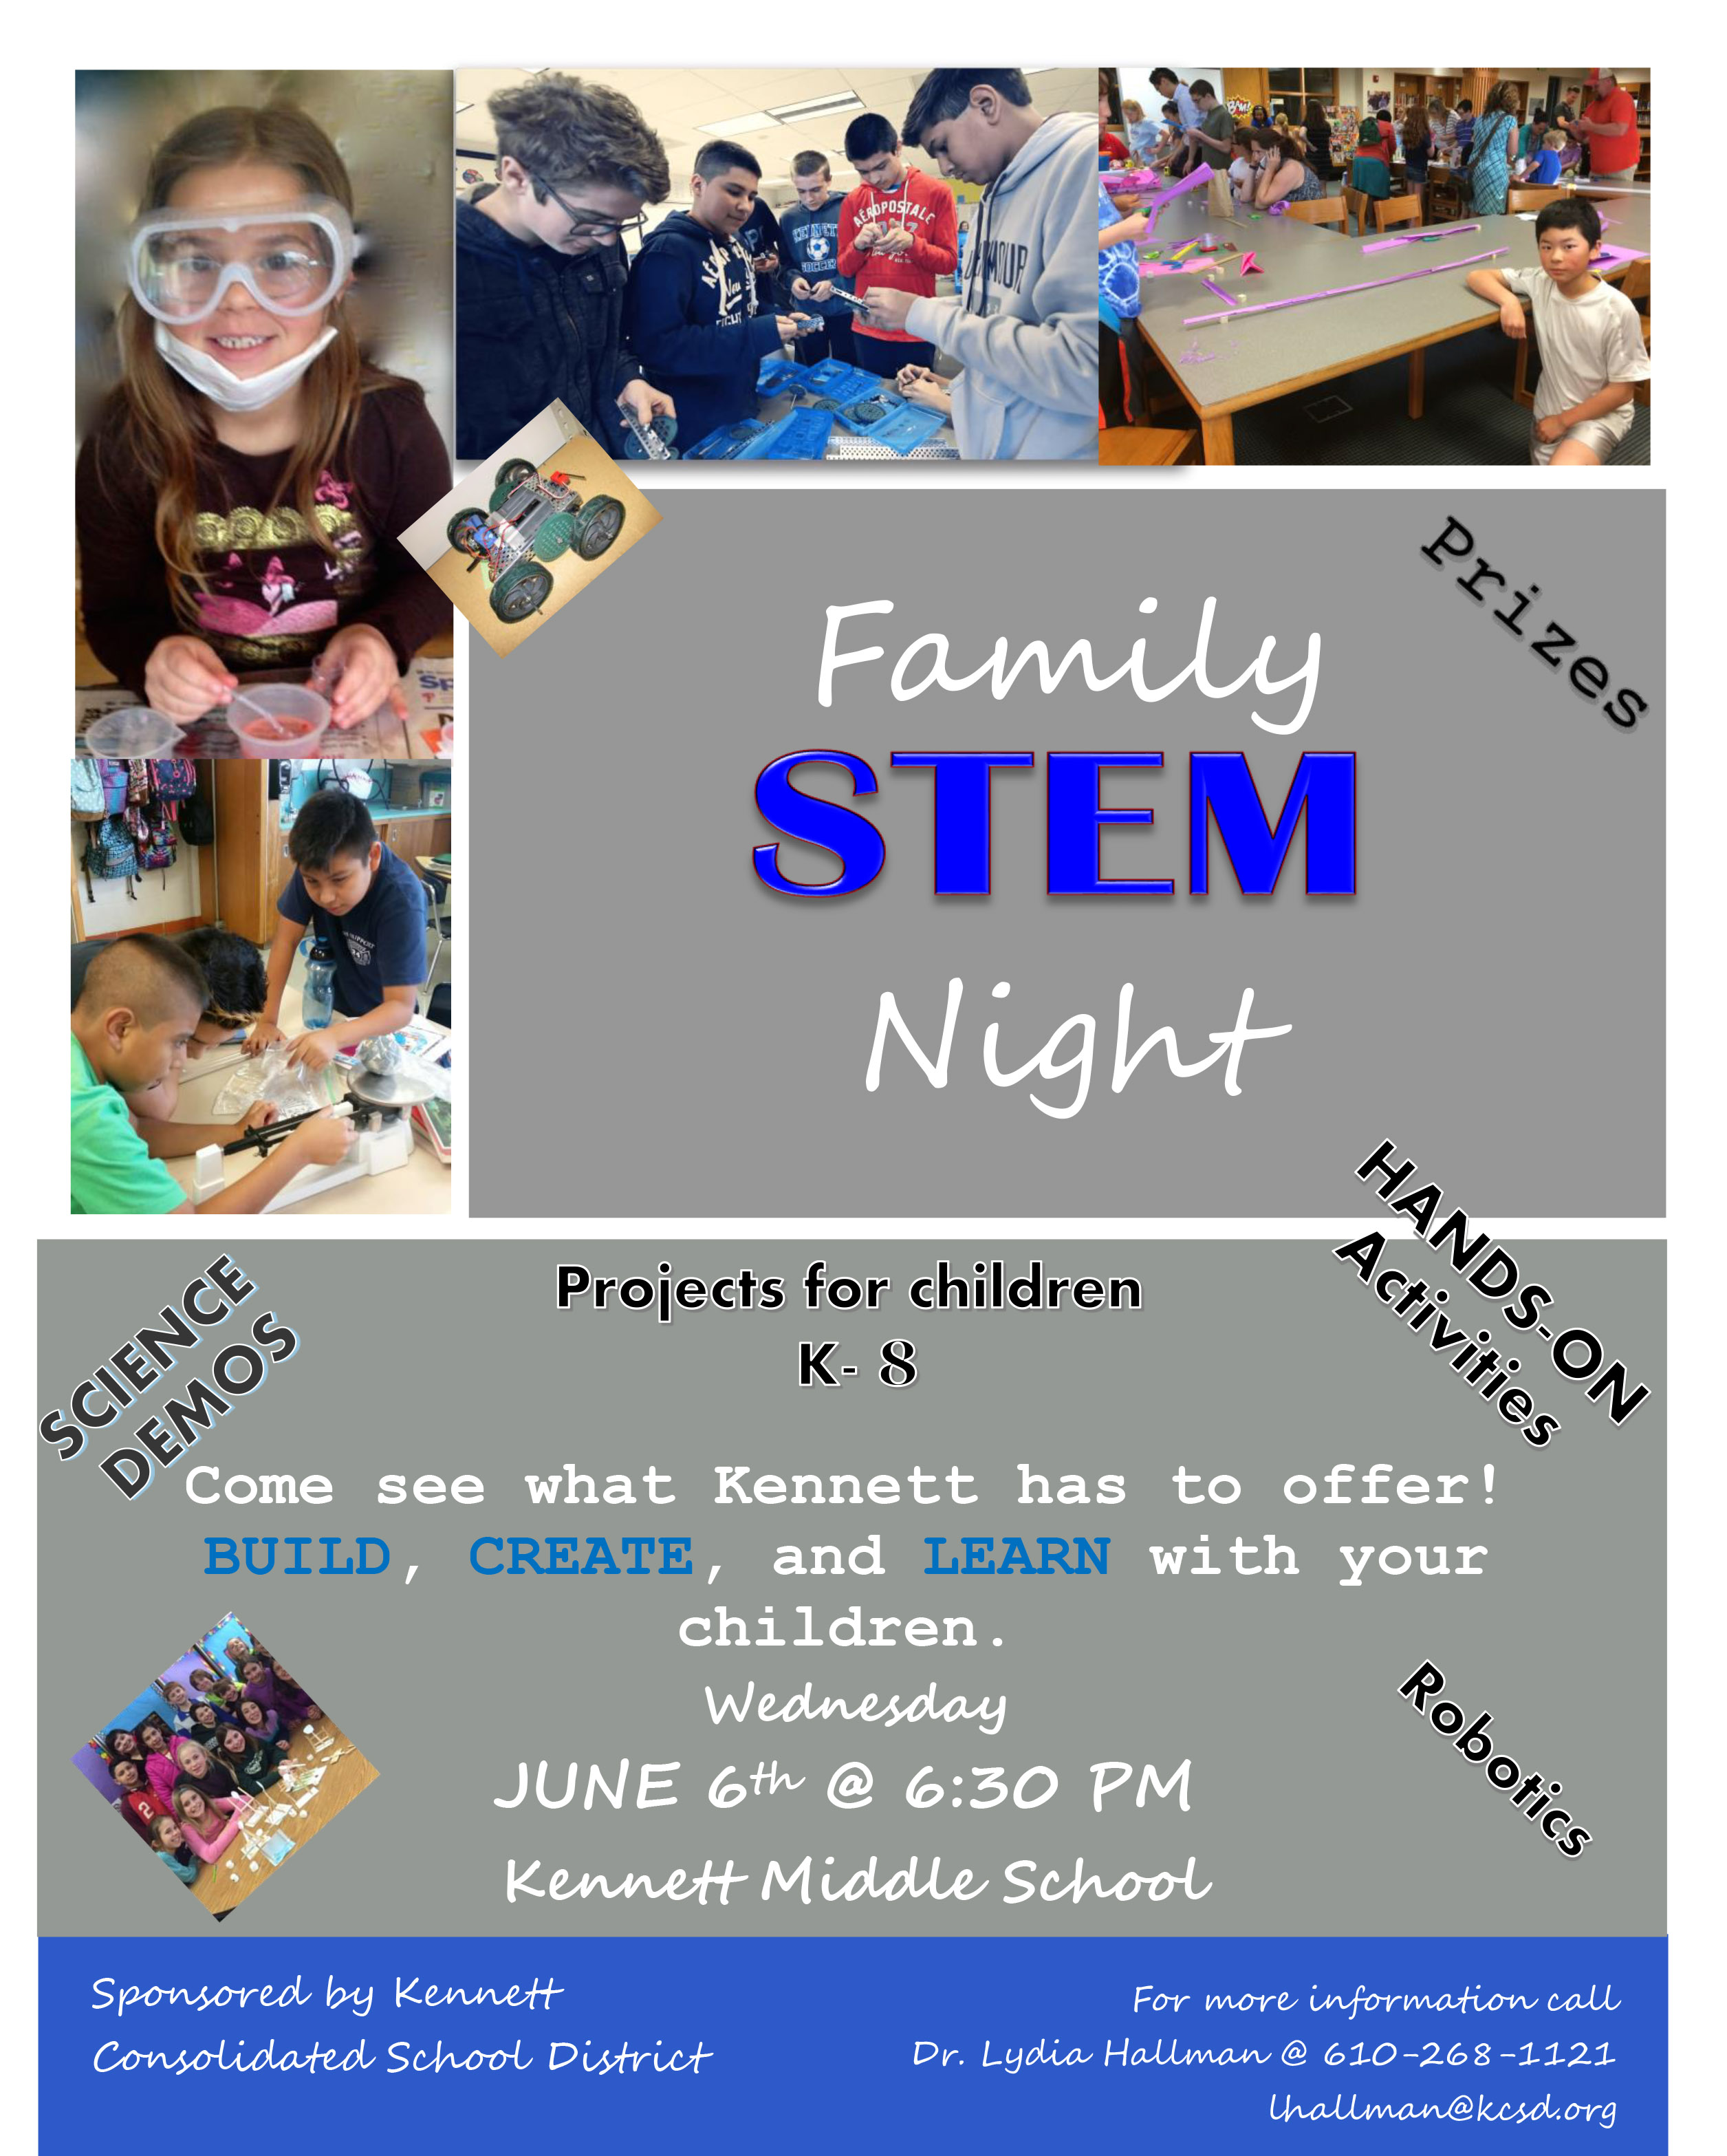 Information about family STEM night